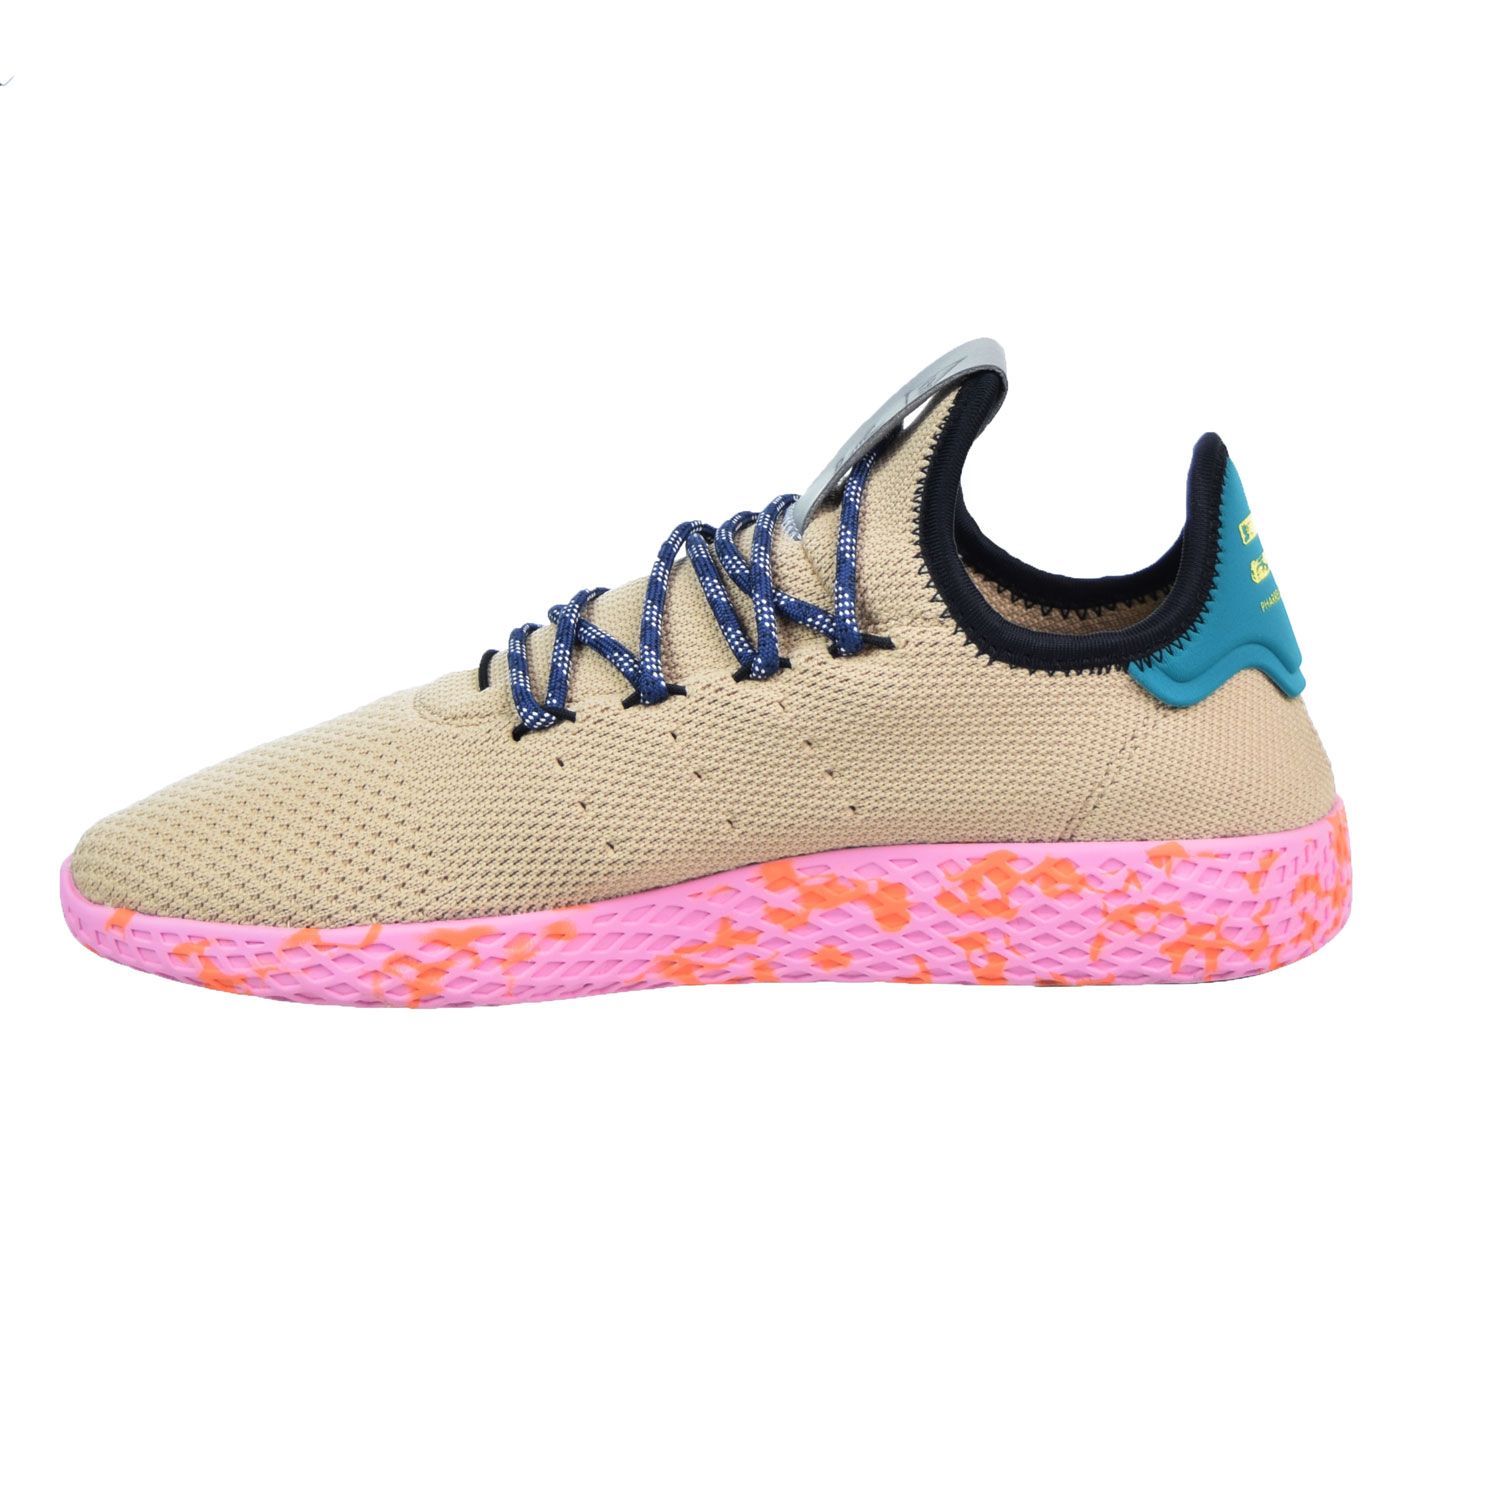 a96bb5fc4 Adidas Pharrell Williams Tennis HU Men s Shoes Tan Teal Pink Marble by2672